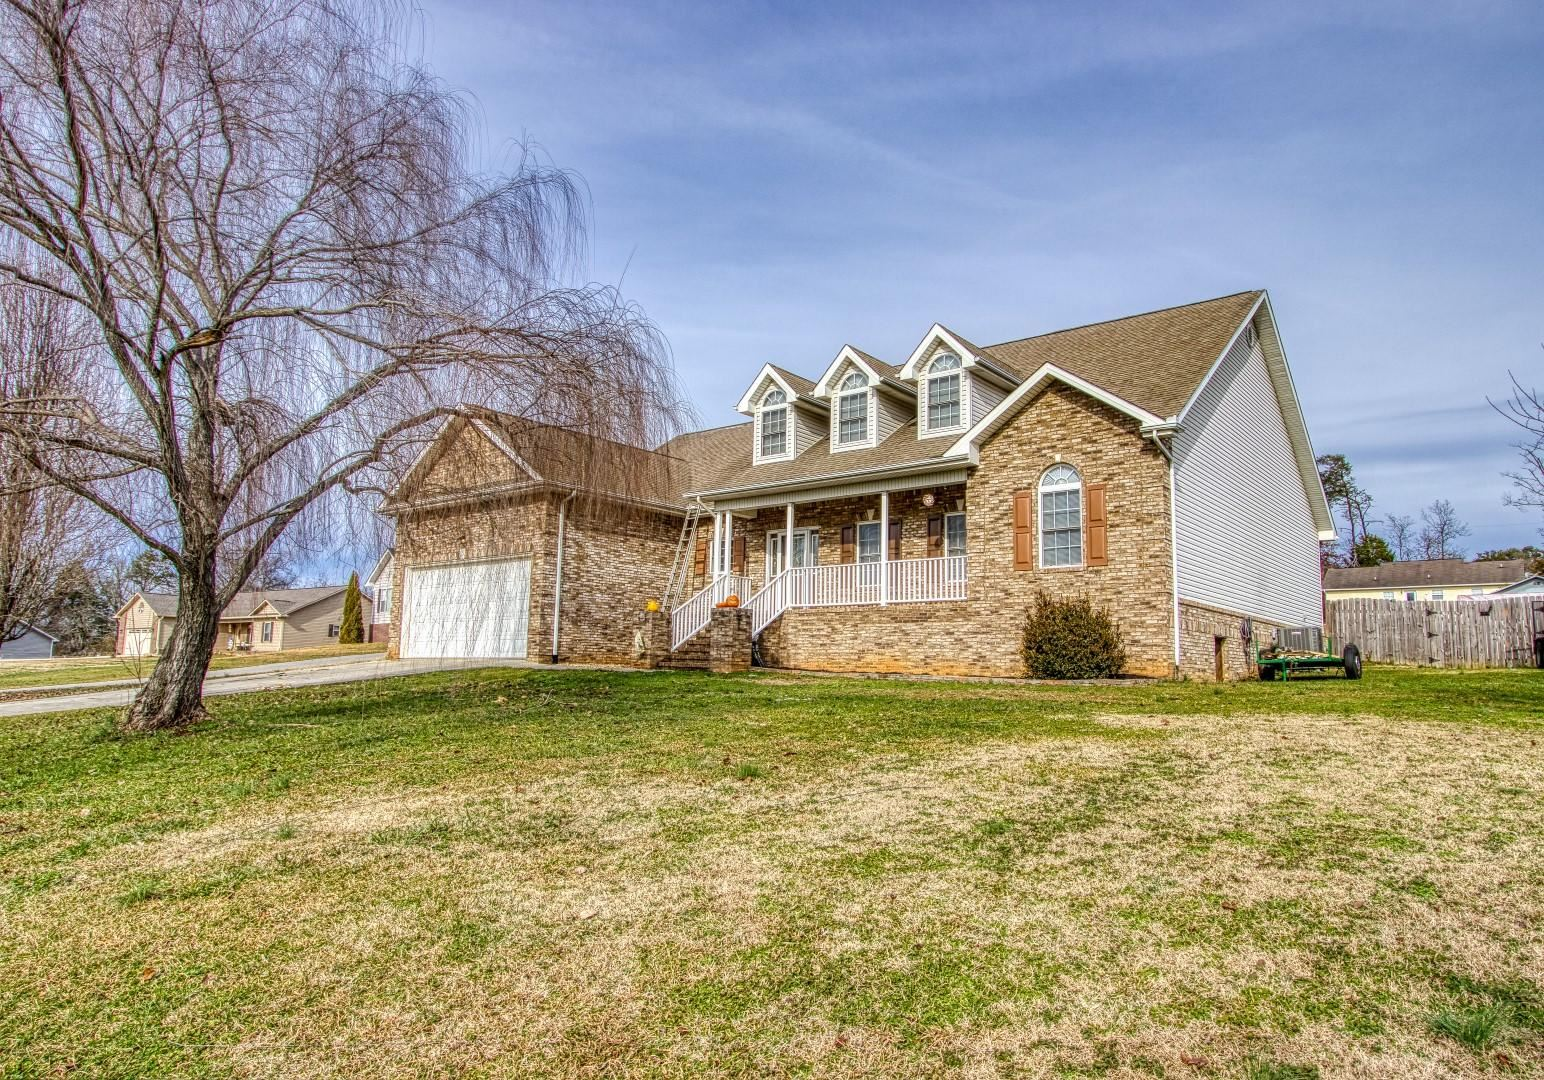 Photo of 1969 River Vista Circle, Sevierville, TN 37876 (MLS # 1139592)